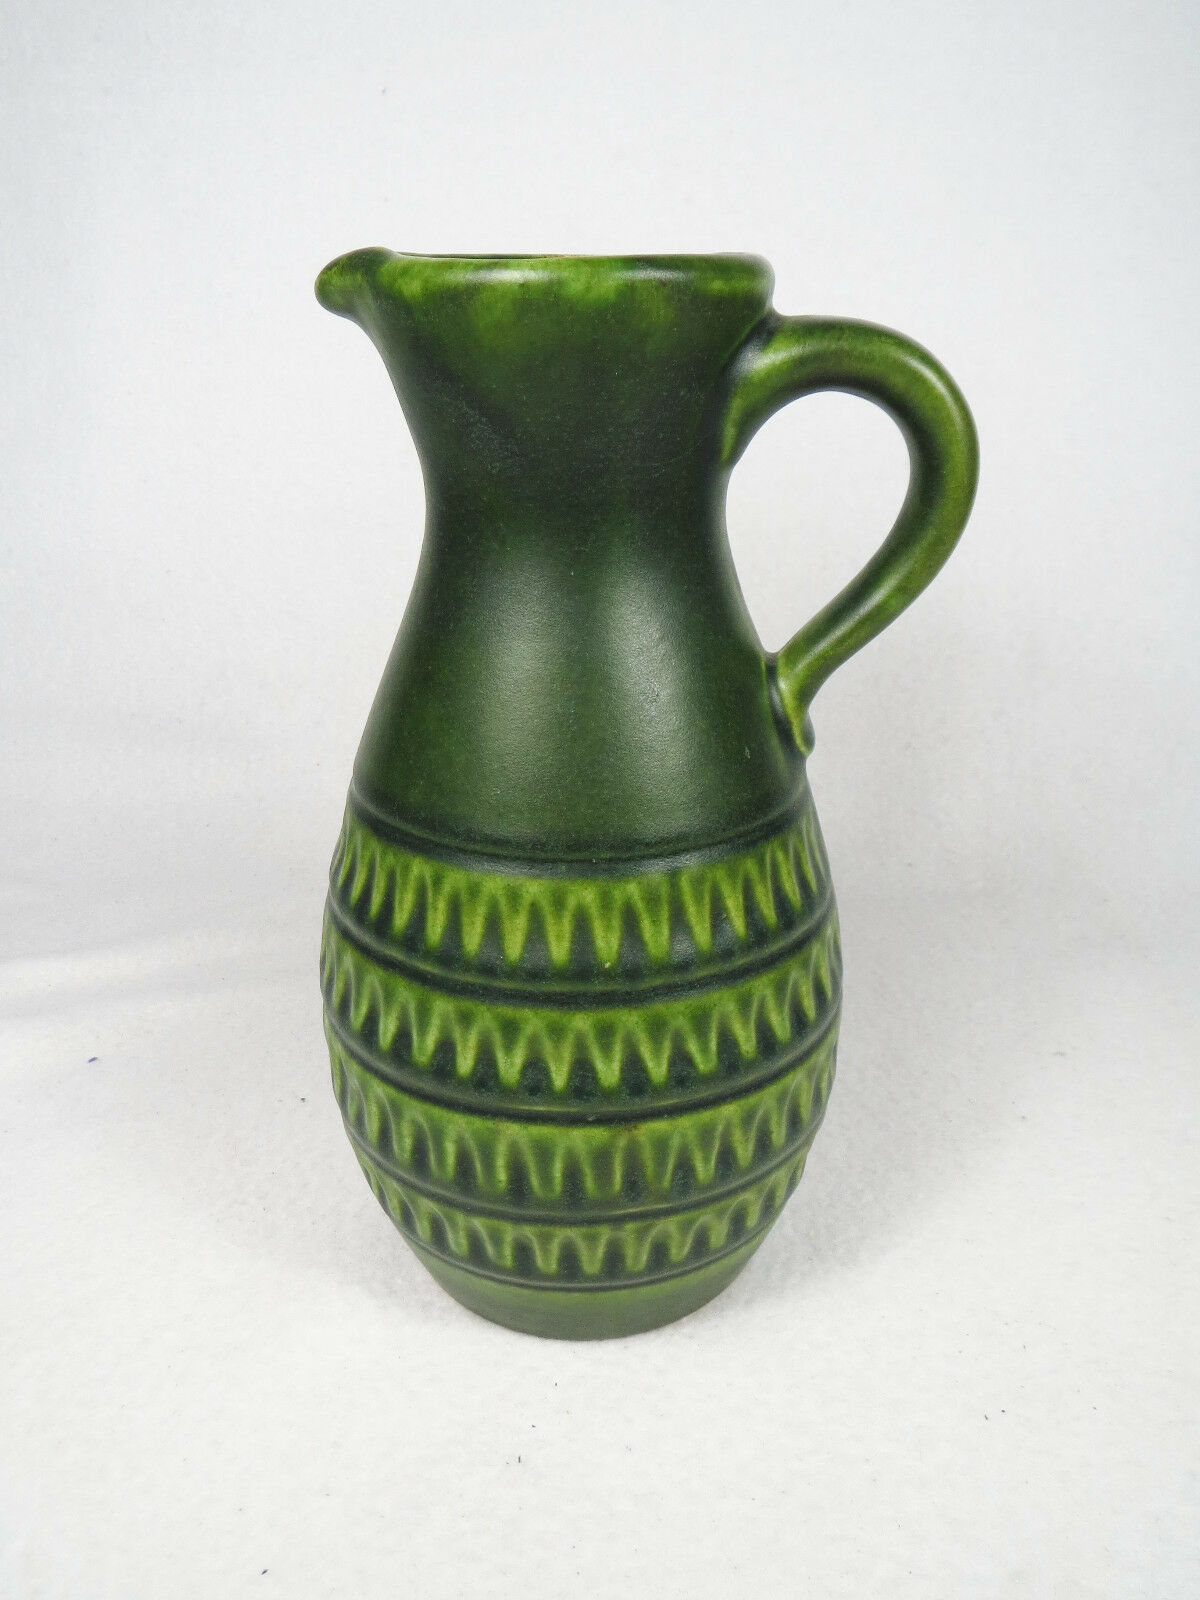 vintage jasba keramik 8 tall vase pitcher jug west german pottery 60s 70s green cad. Black Bedroom Furniture Sets. Home Design Ideas